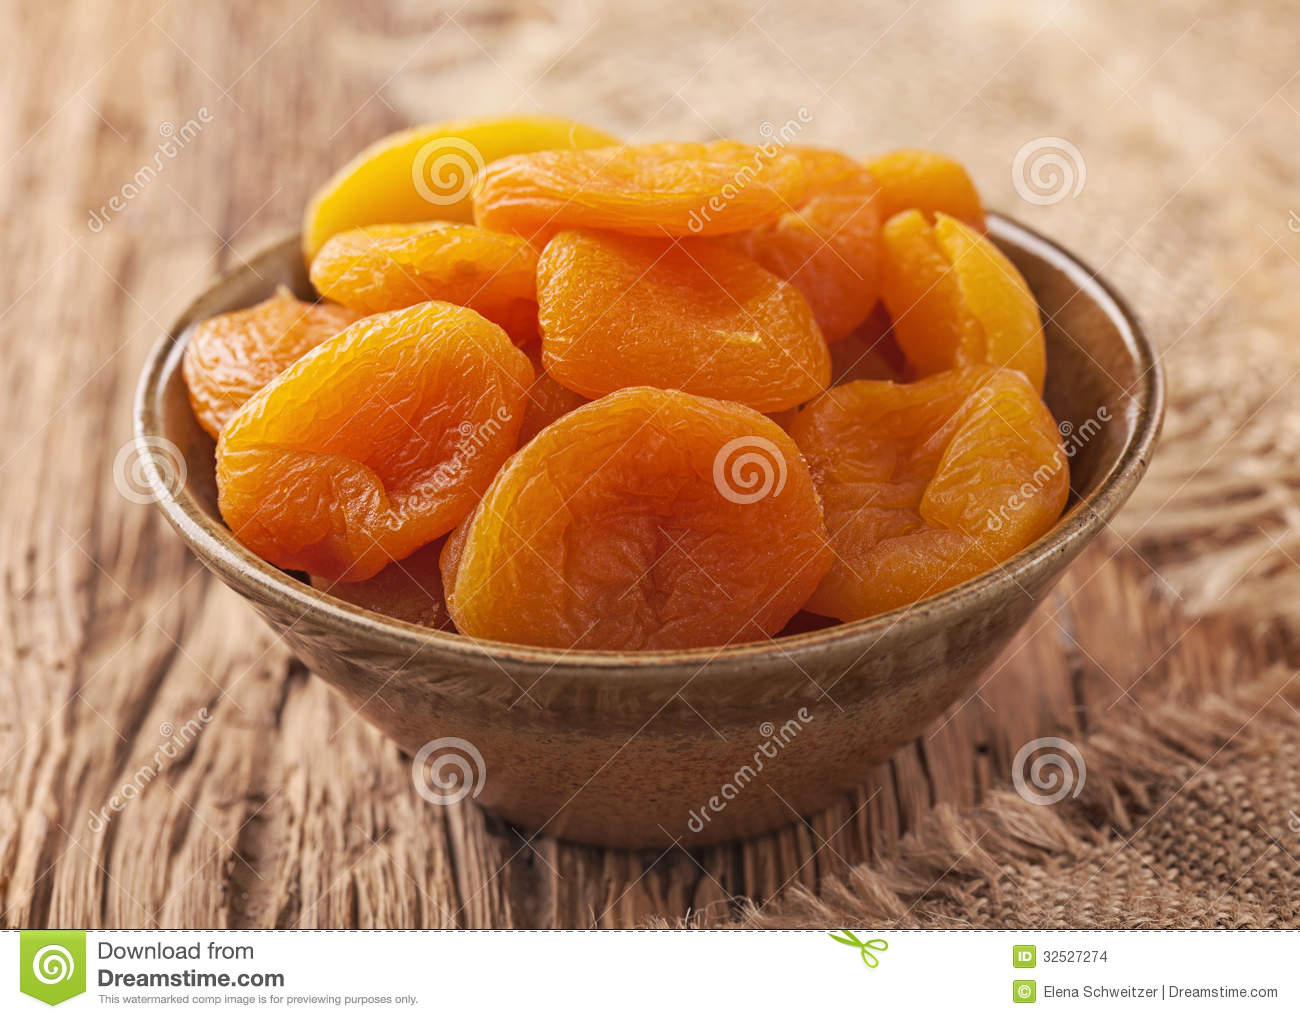 how to make dried apricots at home